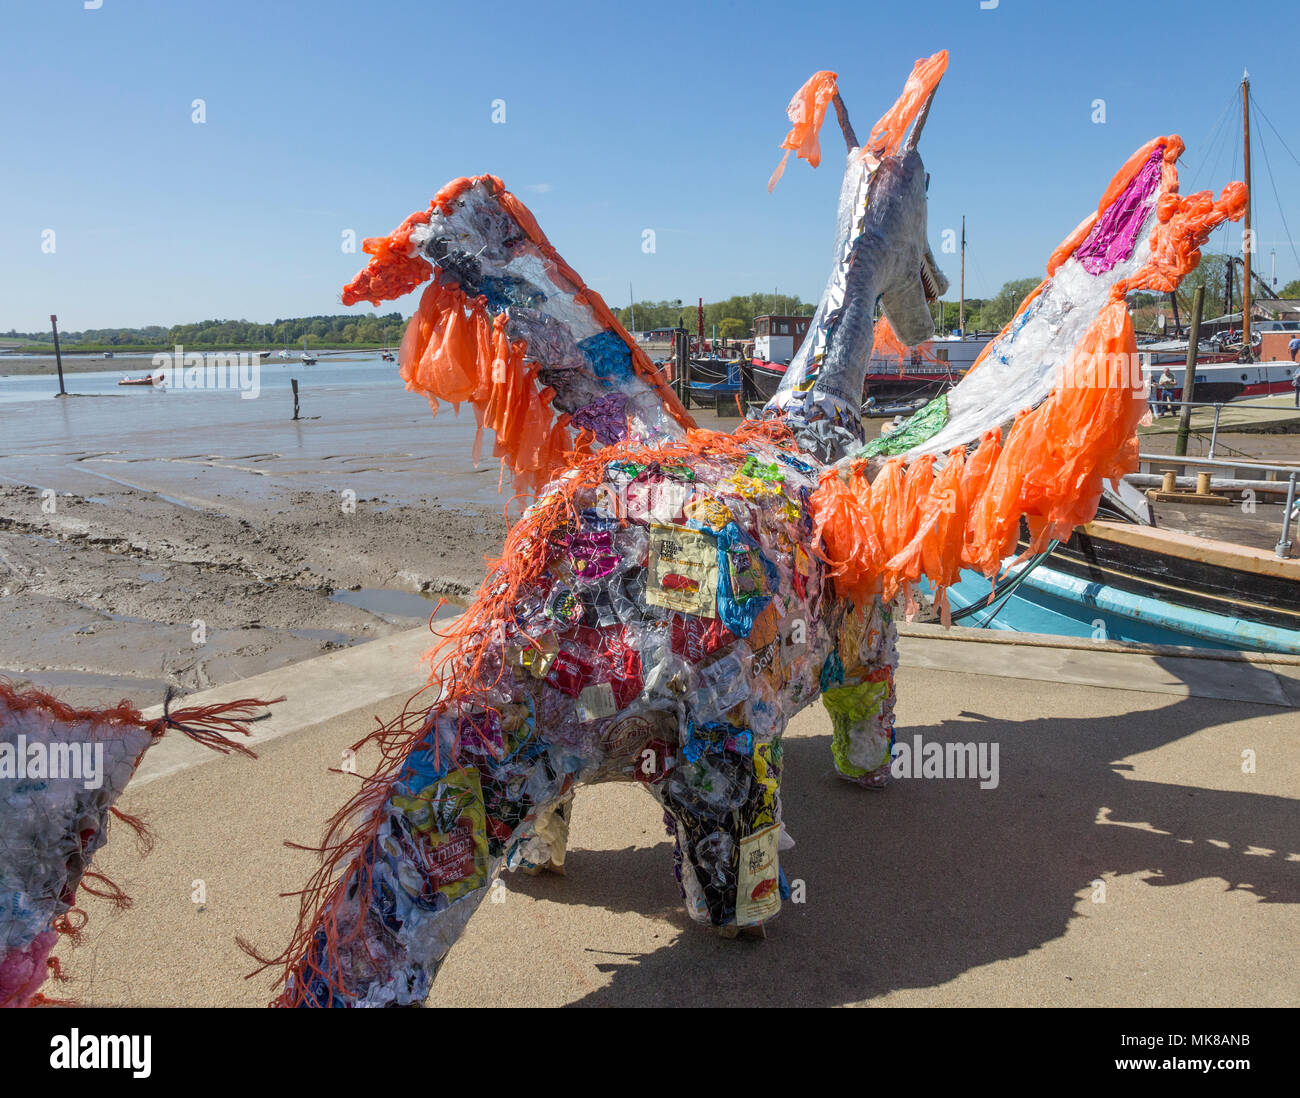 Scruff the Plastic Dragon, Sprit of Beowulf event, Woodbridge, Suffolk, England, UK - 5th May 2018 - Stock Image